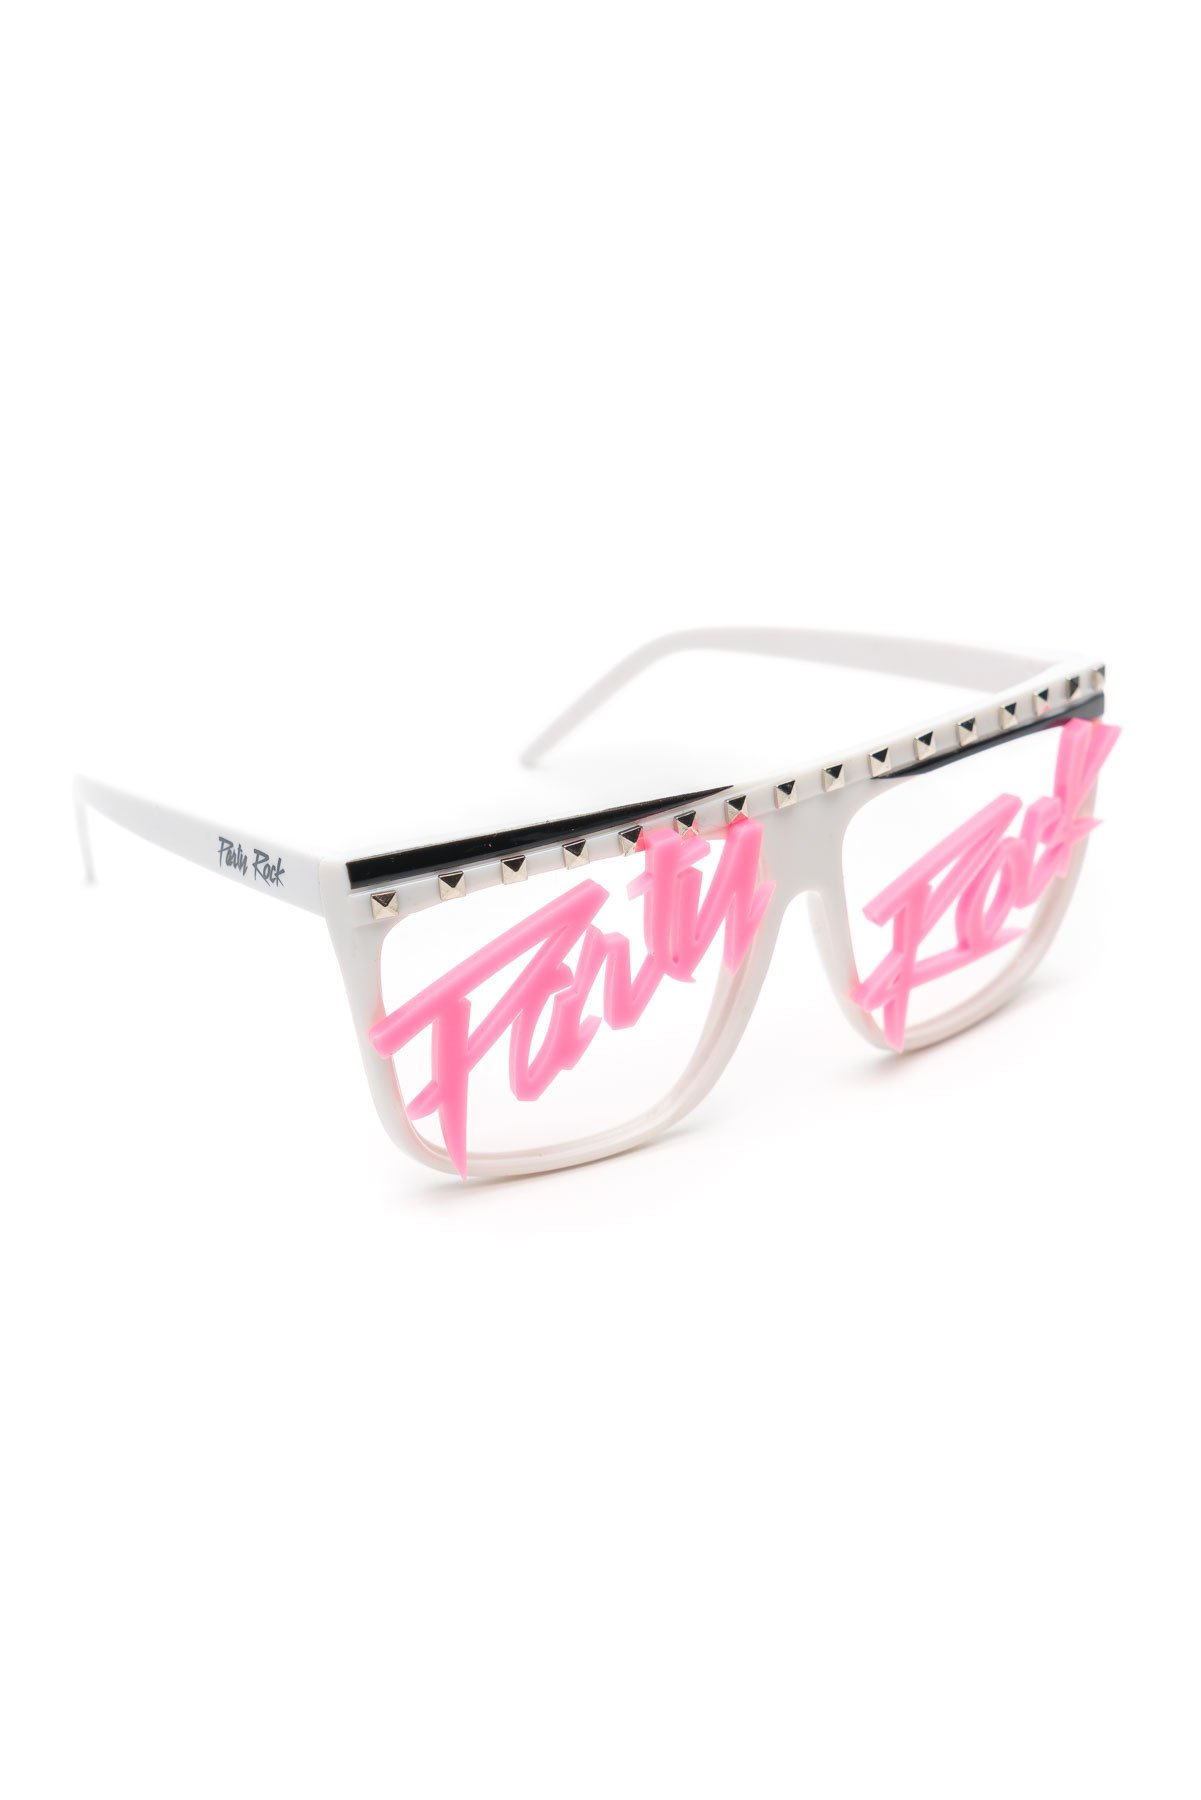 Party Rock Clothing★パーティーロッククロッシング ★Party Rock Words Glasses (ホワイト/ピンク)